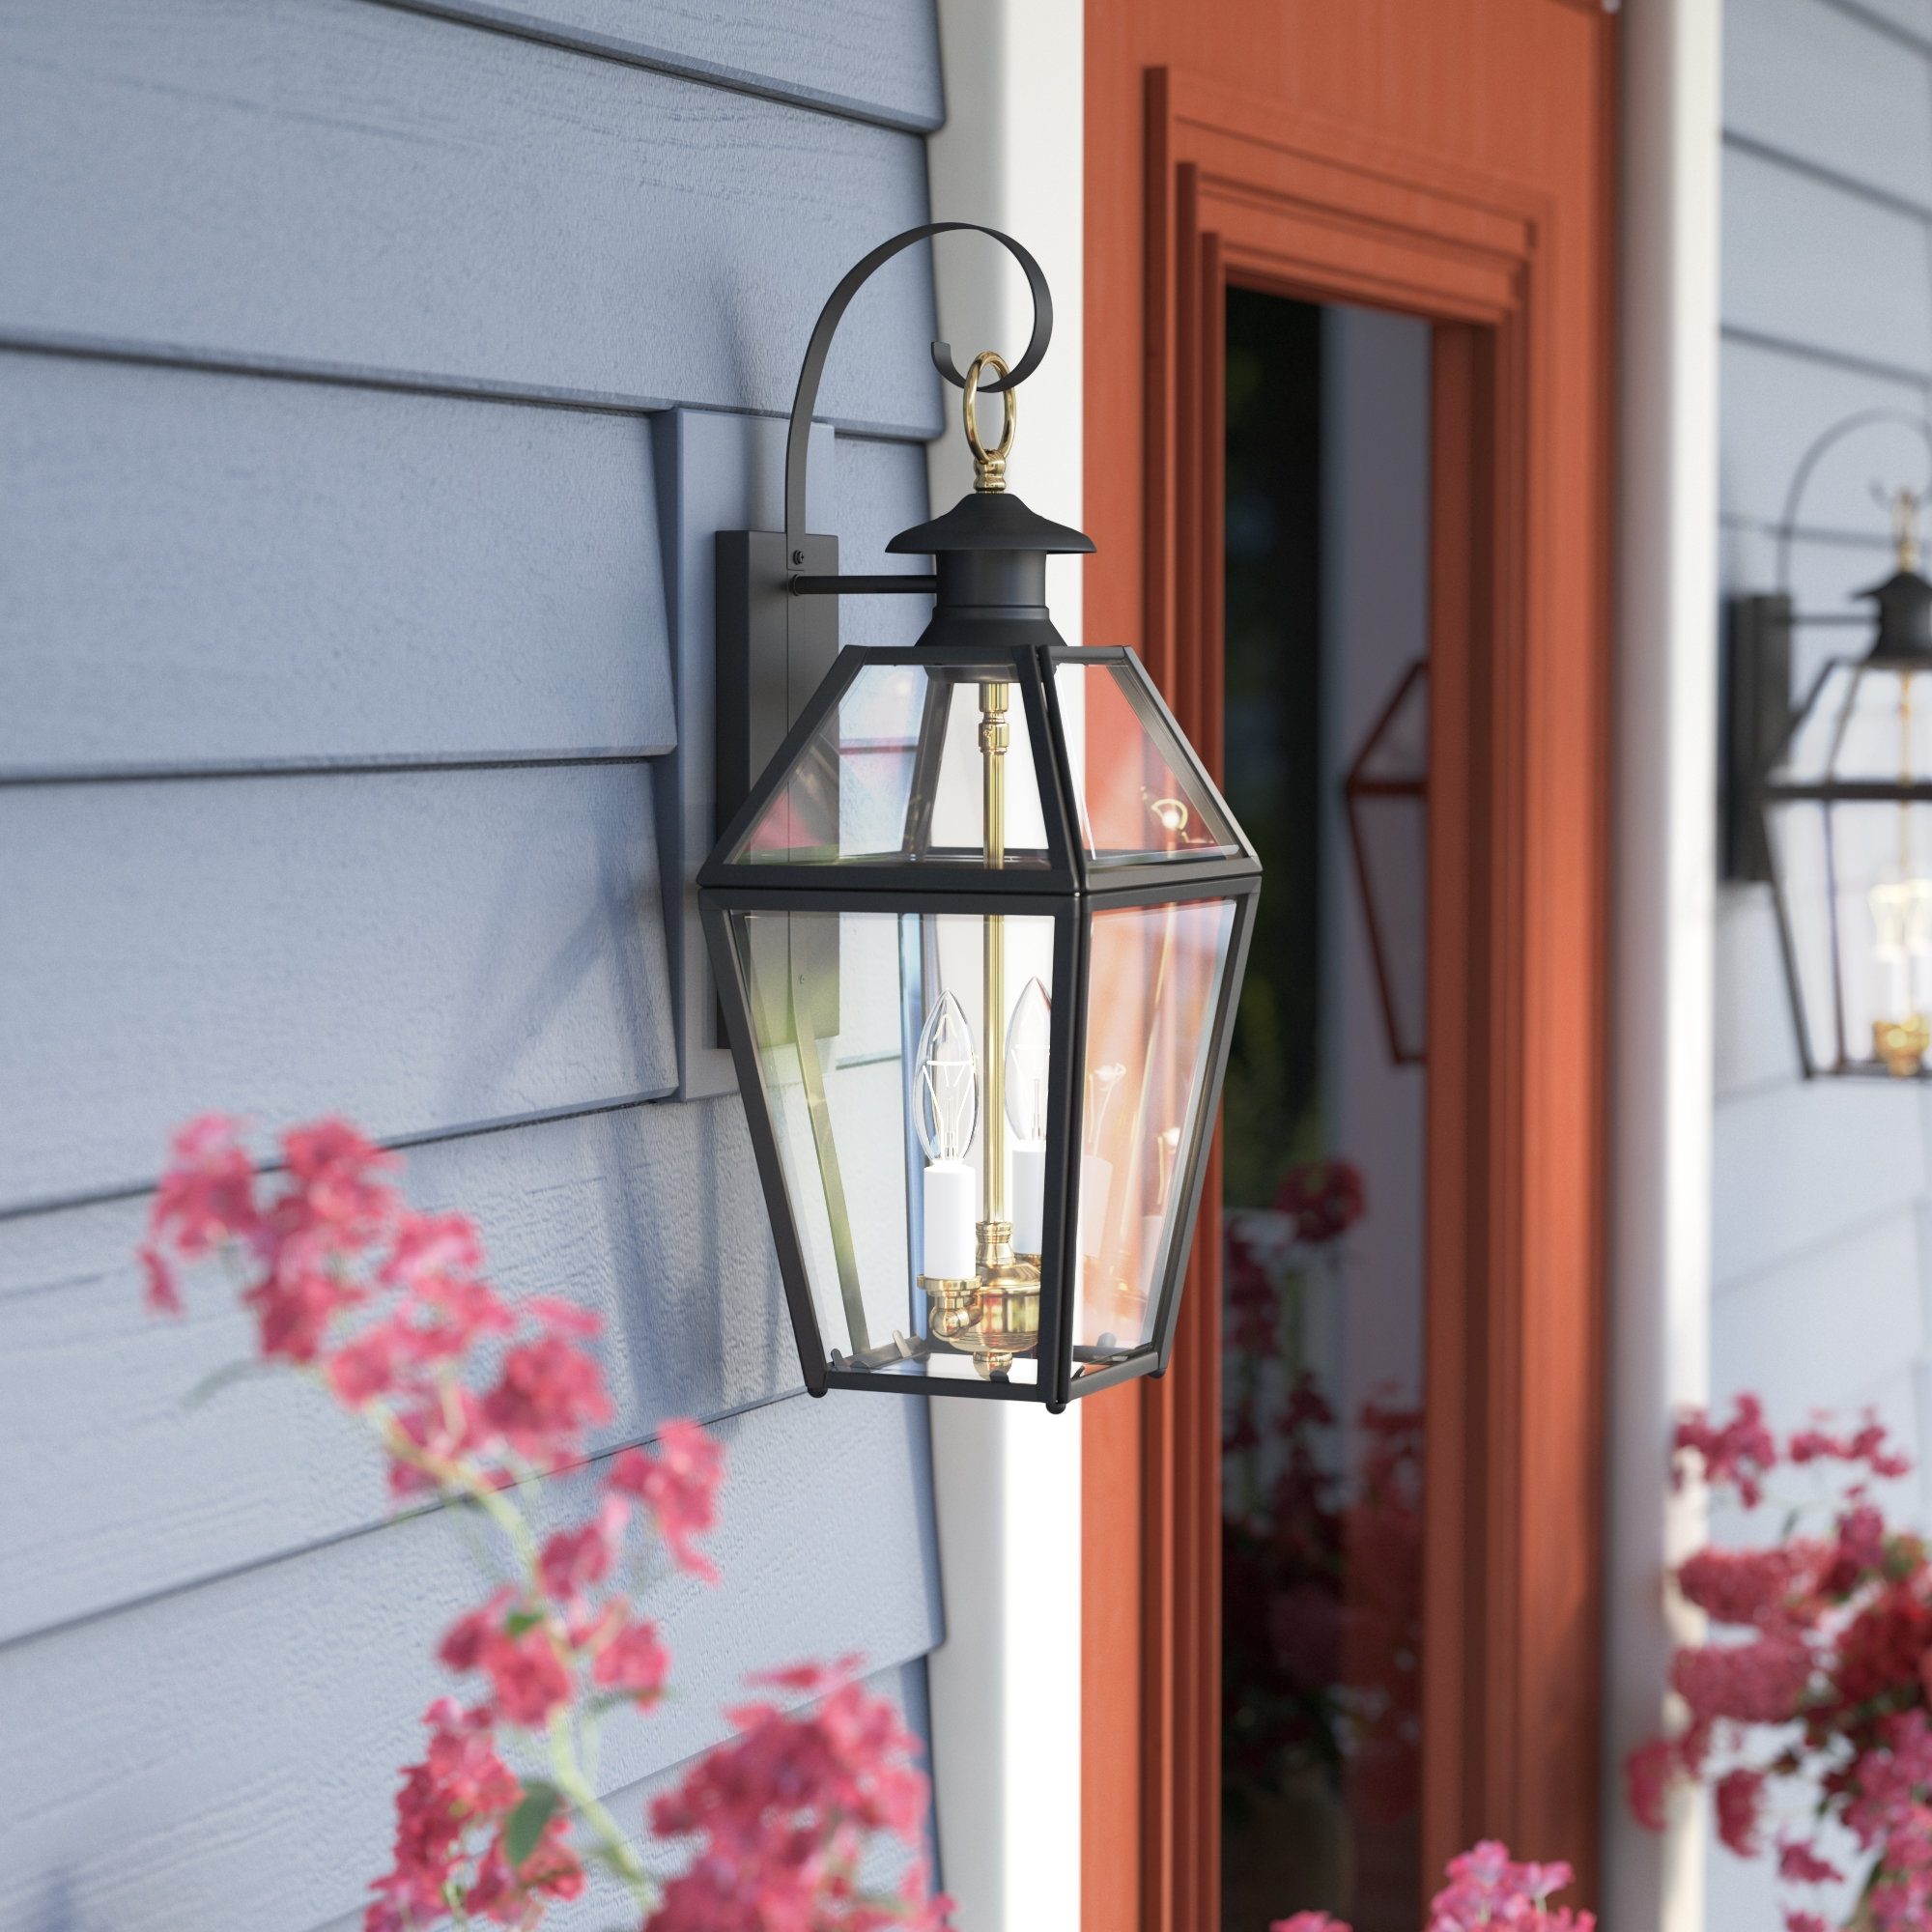 Darby Home Co Alam 2 Light Outdoor Wall Lantern & Reviews | Wayfair Throughout Outdoor Oversized Lanterns (View 16 of 20)